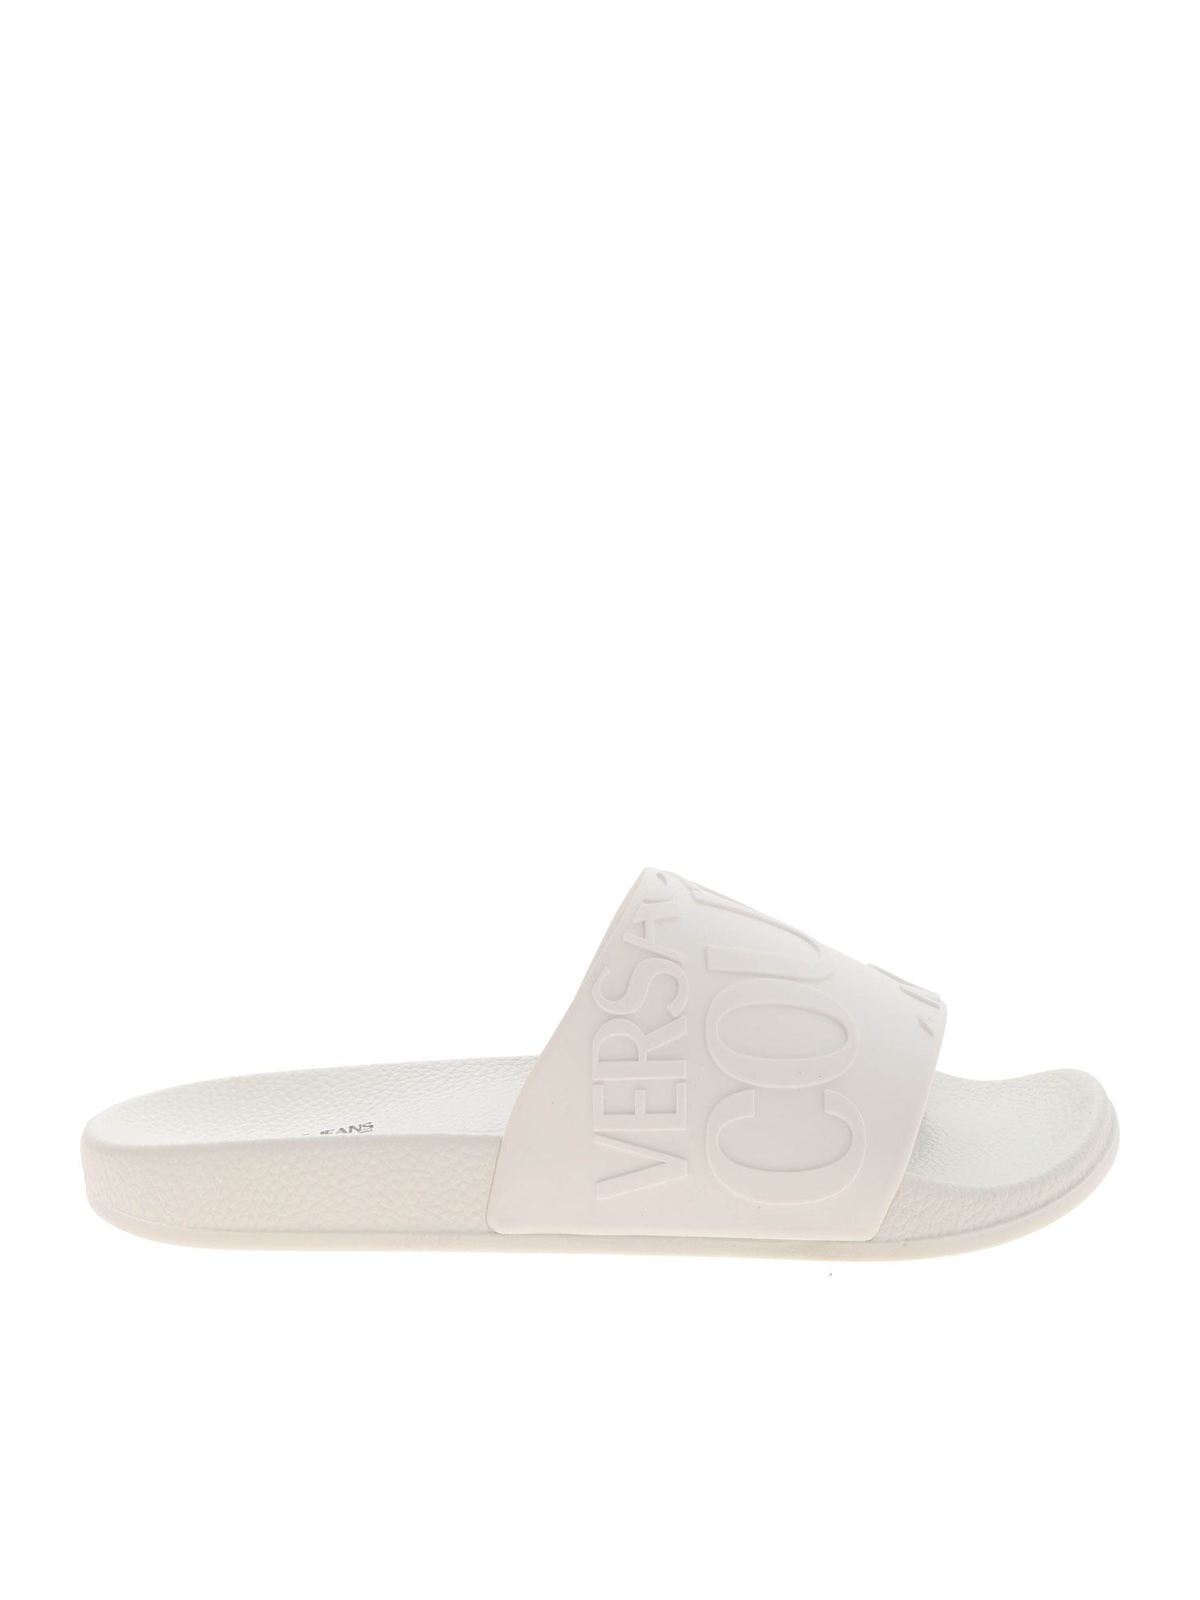 Versace Jeans Couture LOGO SLIPPER IN WHITE